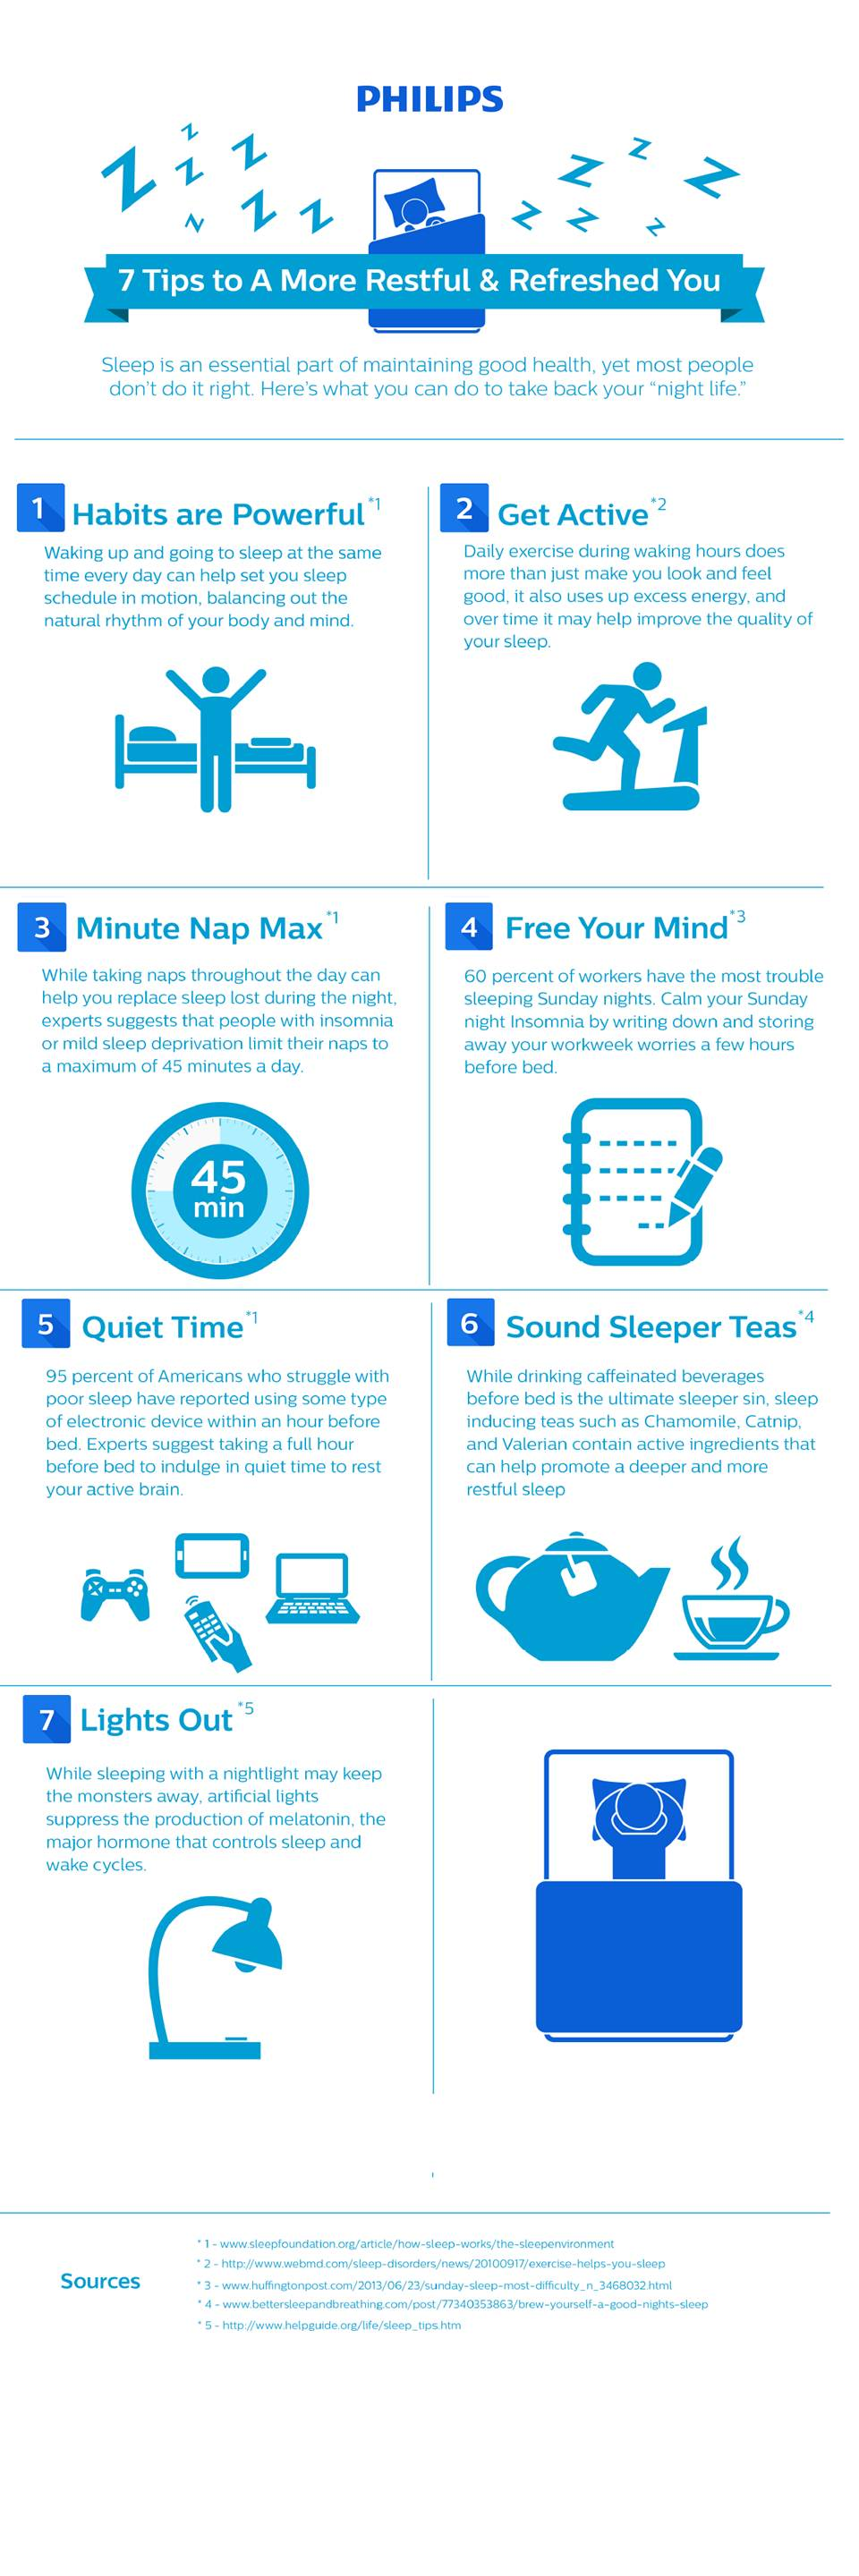 7 Tips to a More Restful & Refreshed You